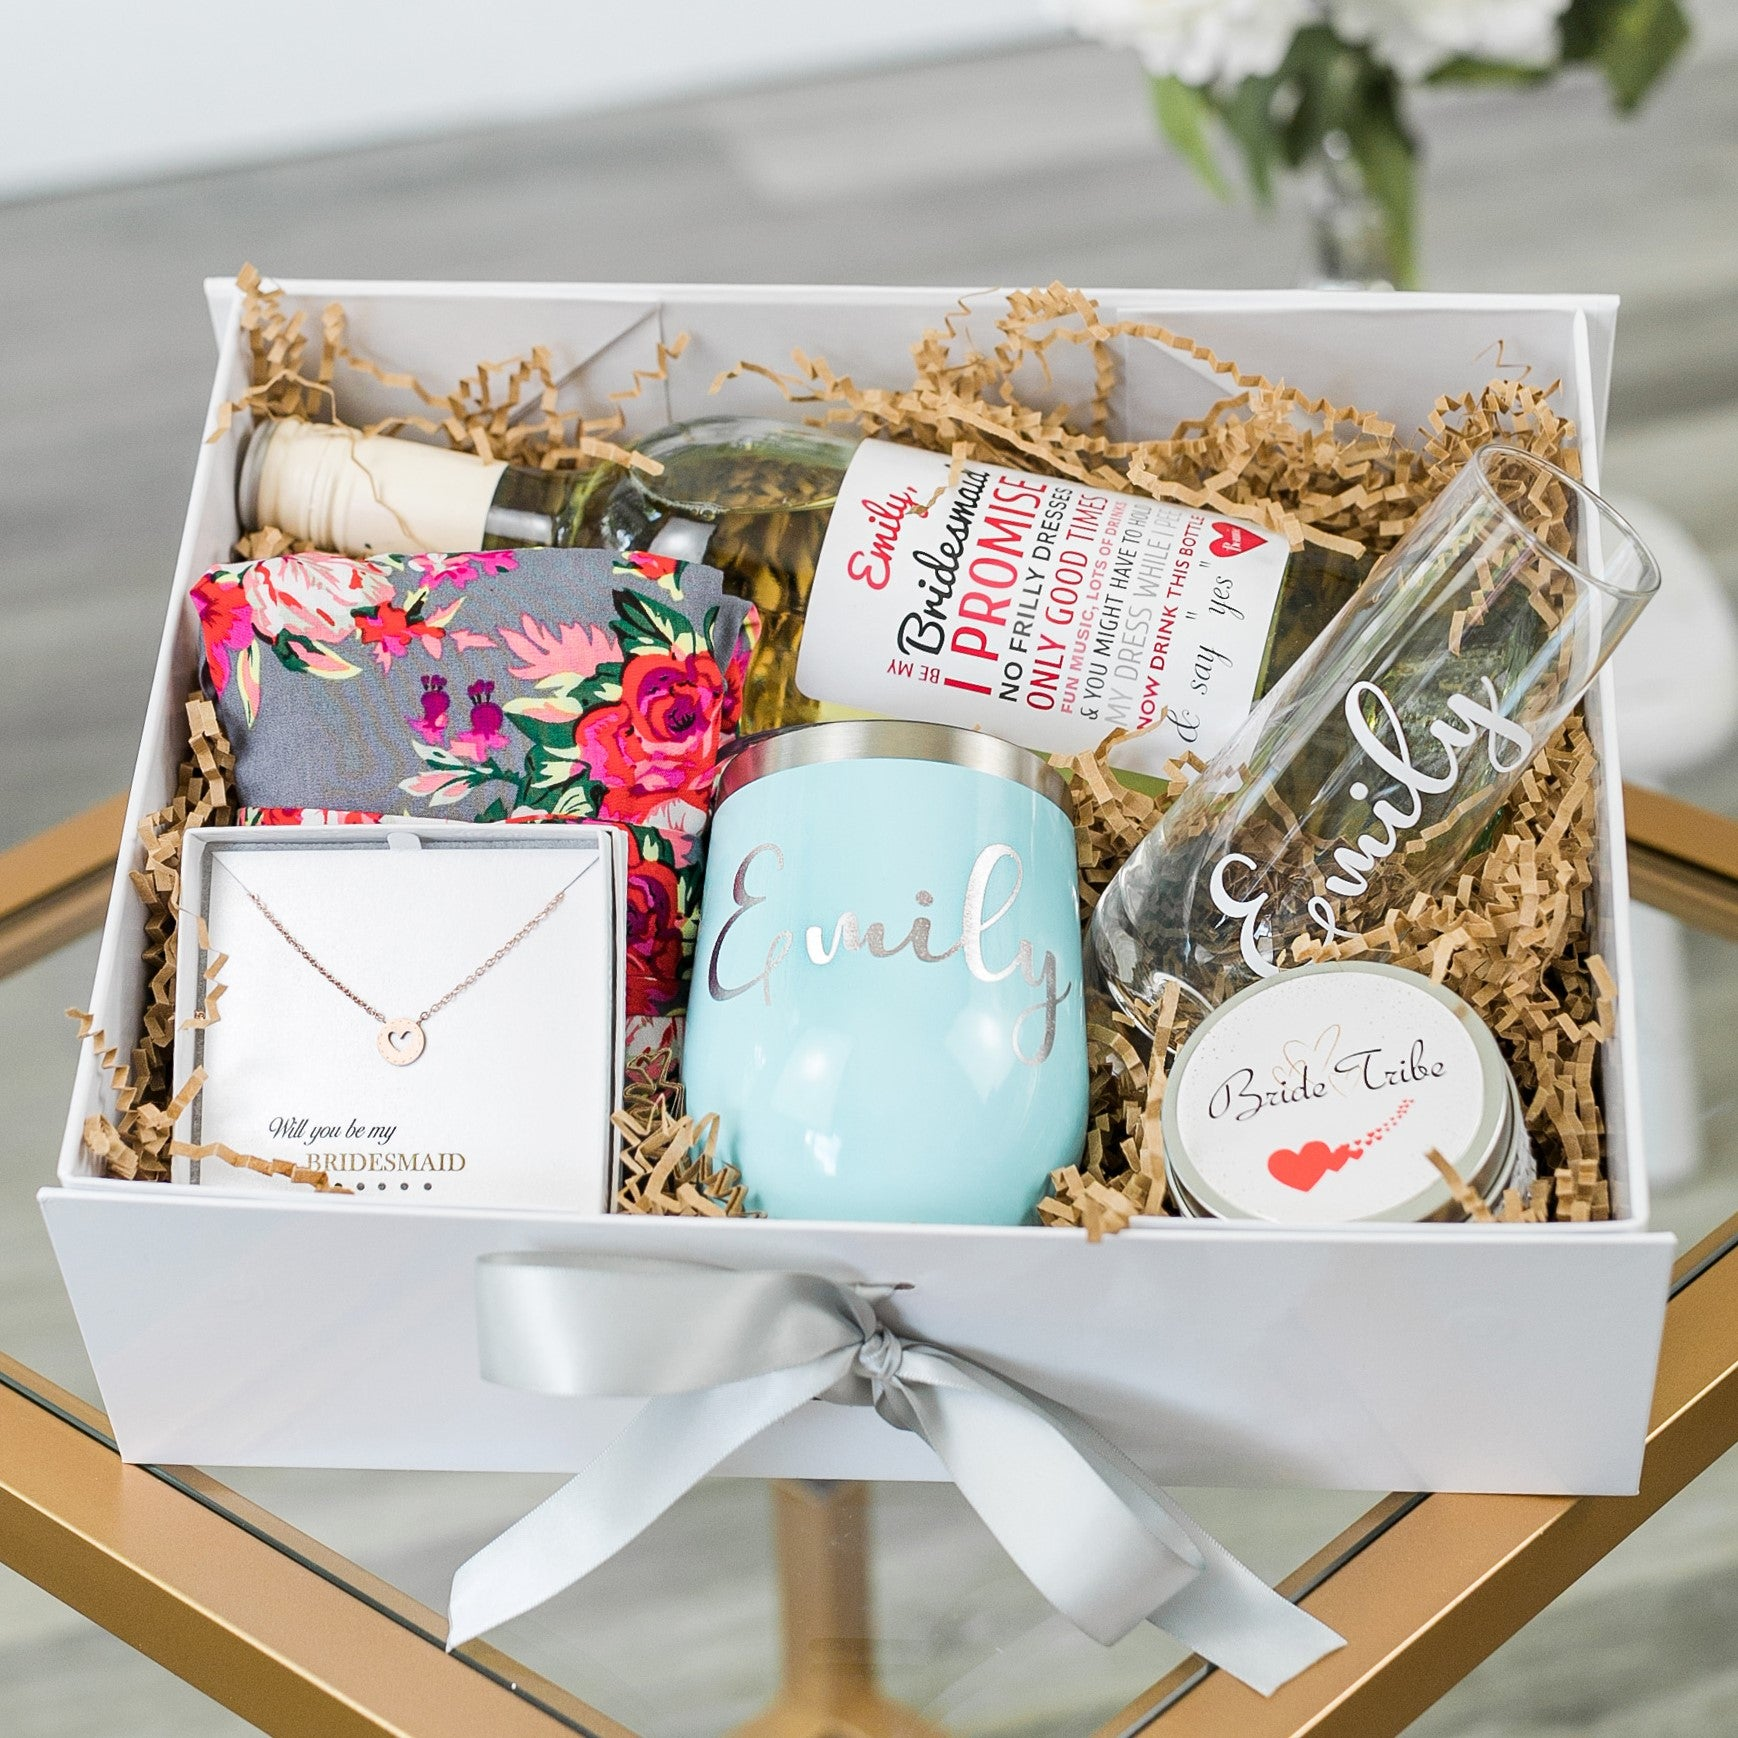 16 Best Bridesmaid Gift Boxes and Sets (Free Personalization Today) -  Bridesmaid Gifts Boutique